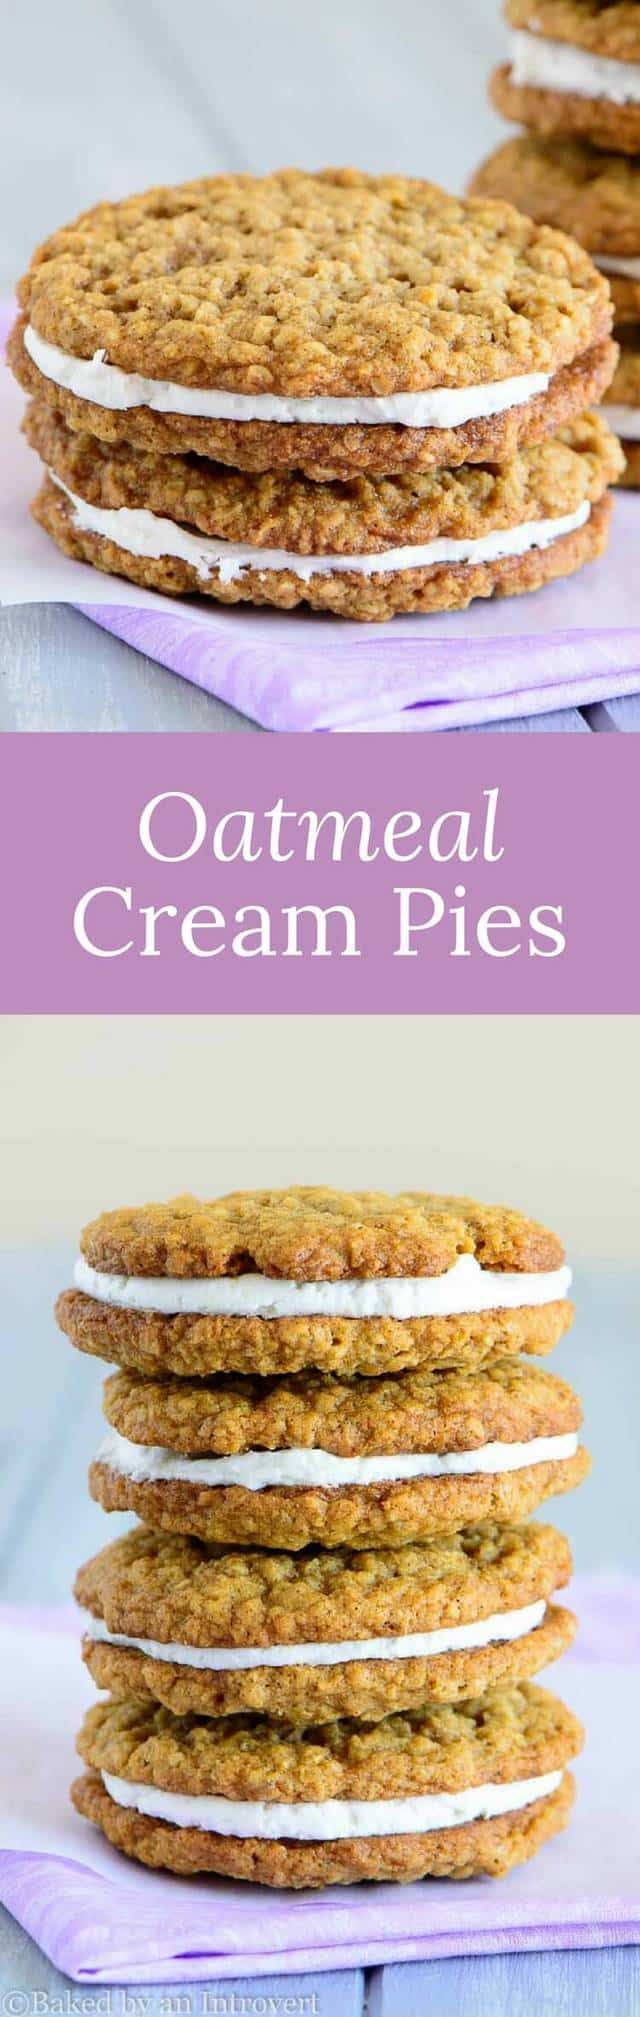 If you're searching for a soft oatmeal cookie with a creamy center, look no further than these super easy oatmeal cream pies. via @introvertbaker